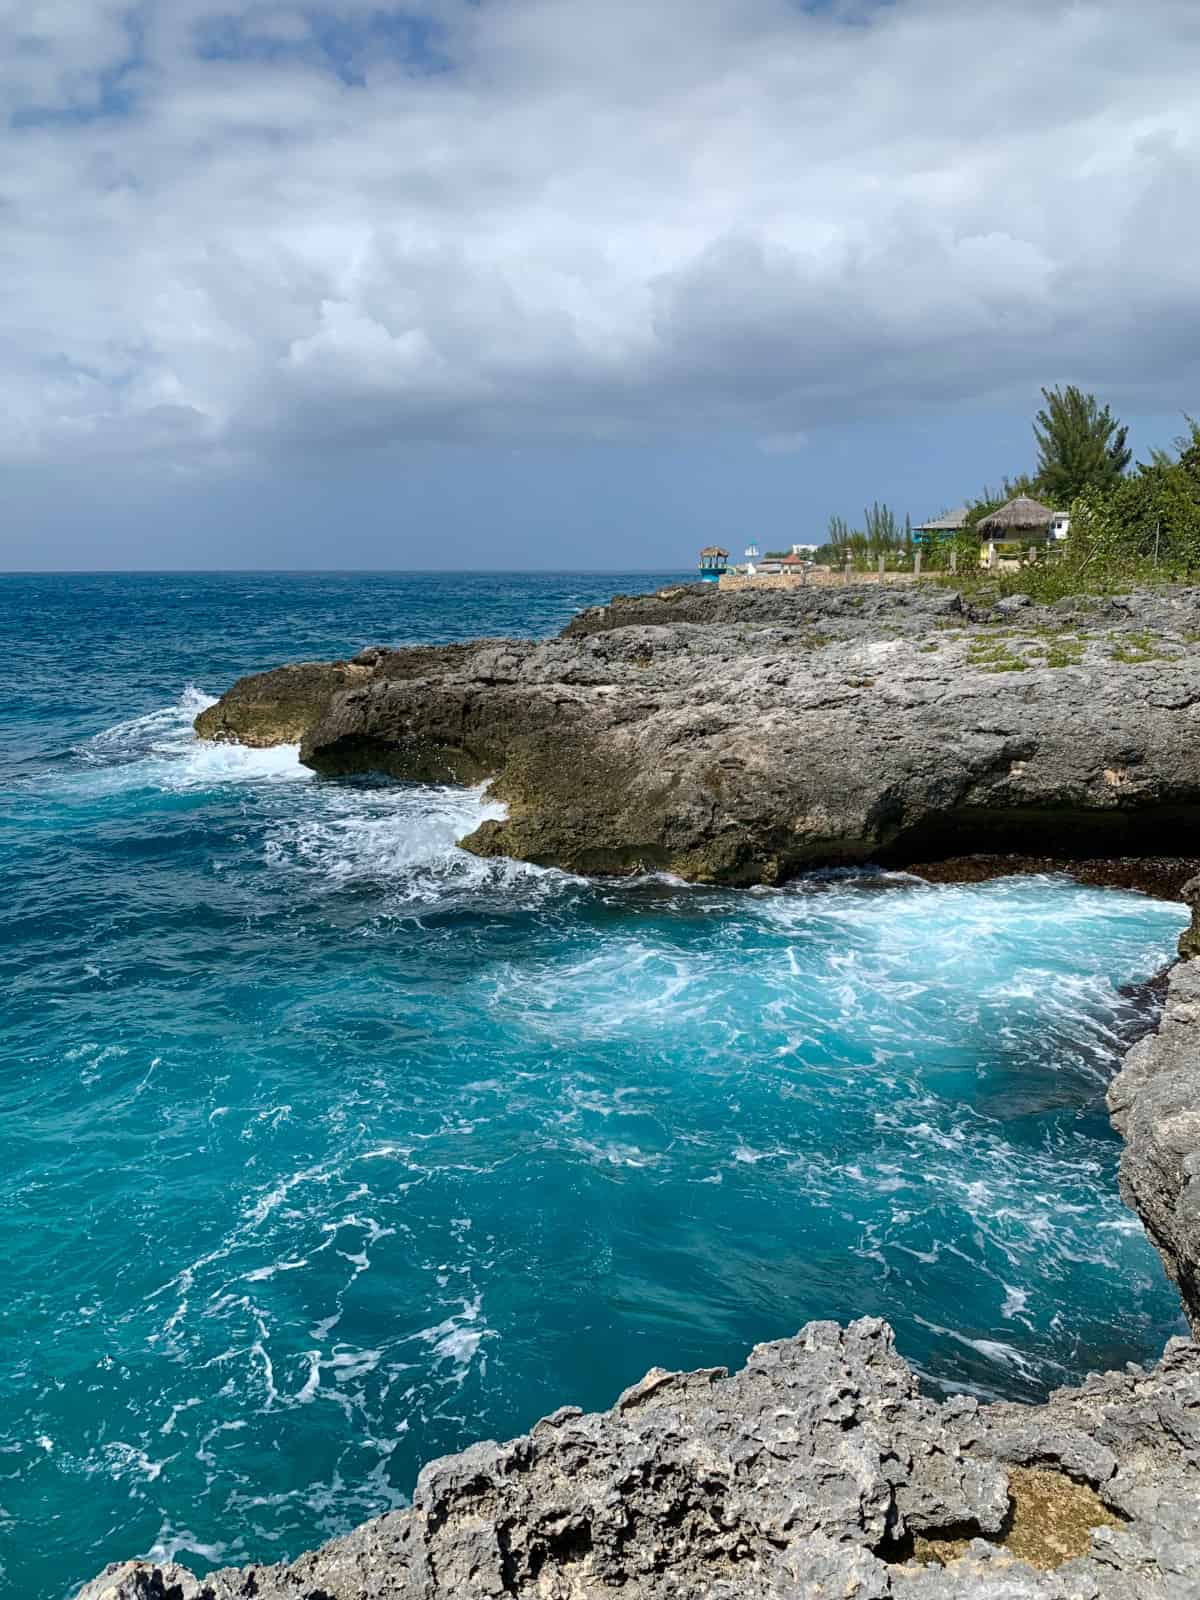 A little different from the beach, but I loved the cliffs of Negril's West End